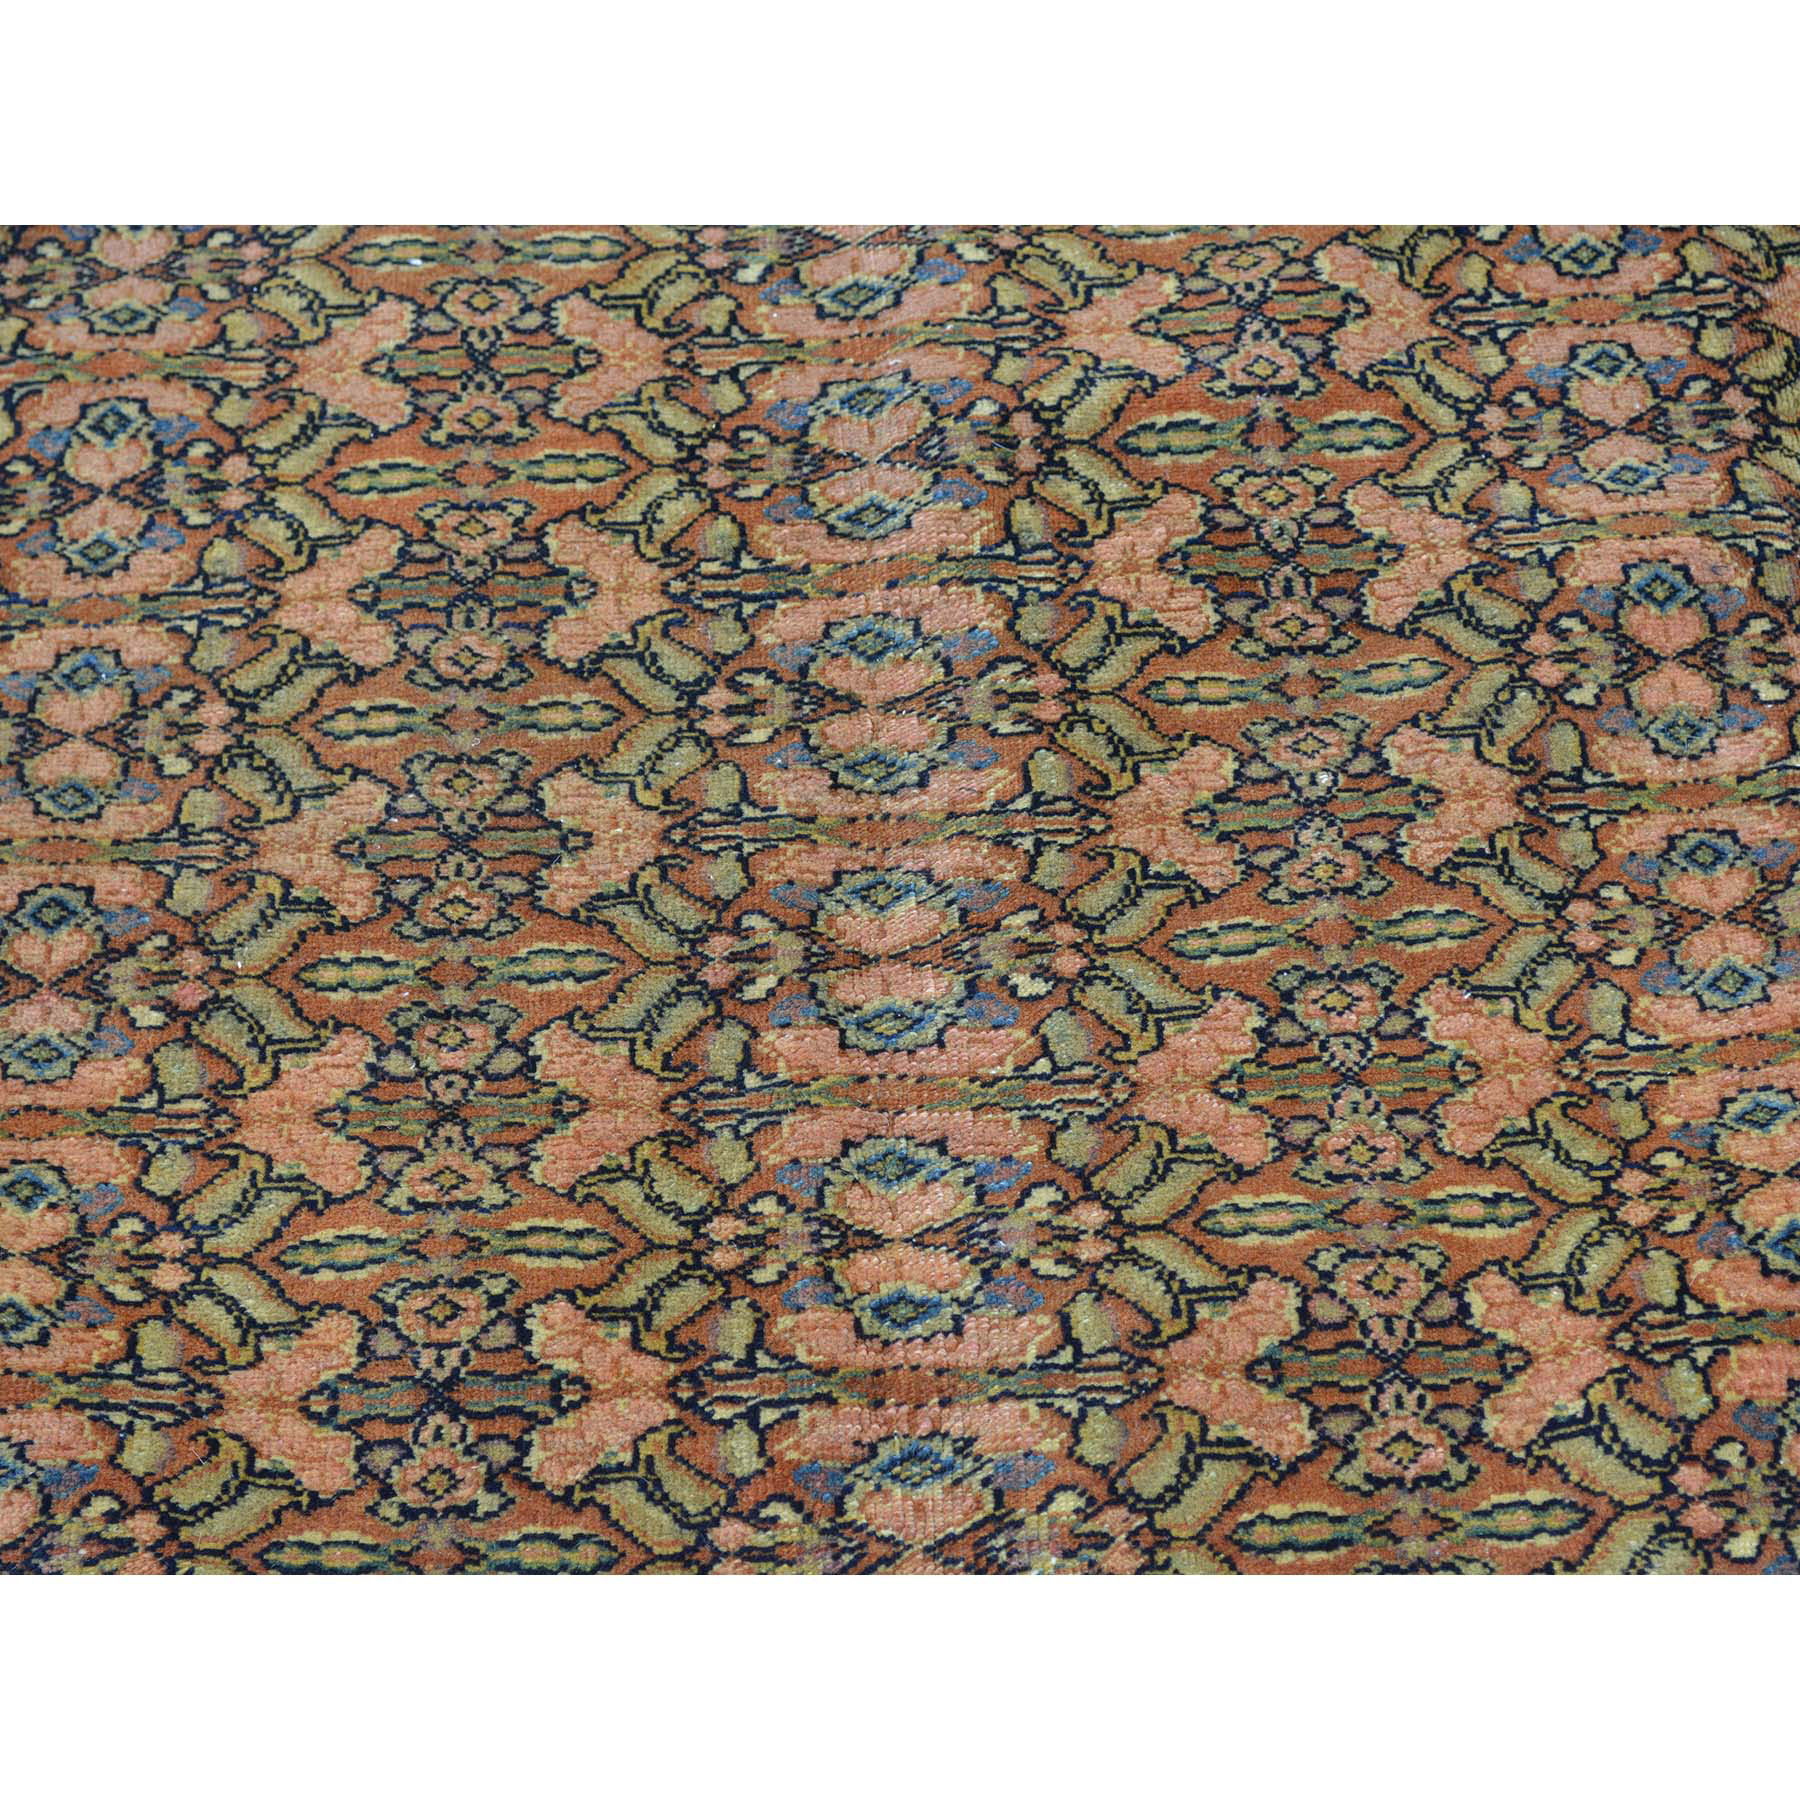 7-2 x9-10  Antique Persian Tabriz Full Pile Hand Knotted Oriental Rug